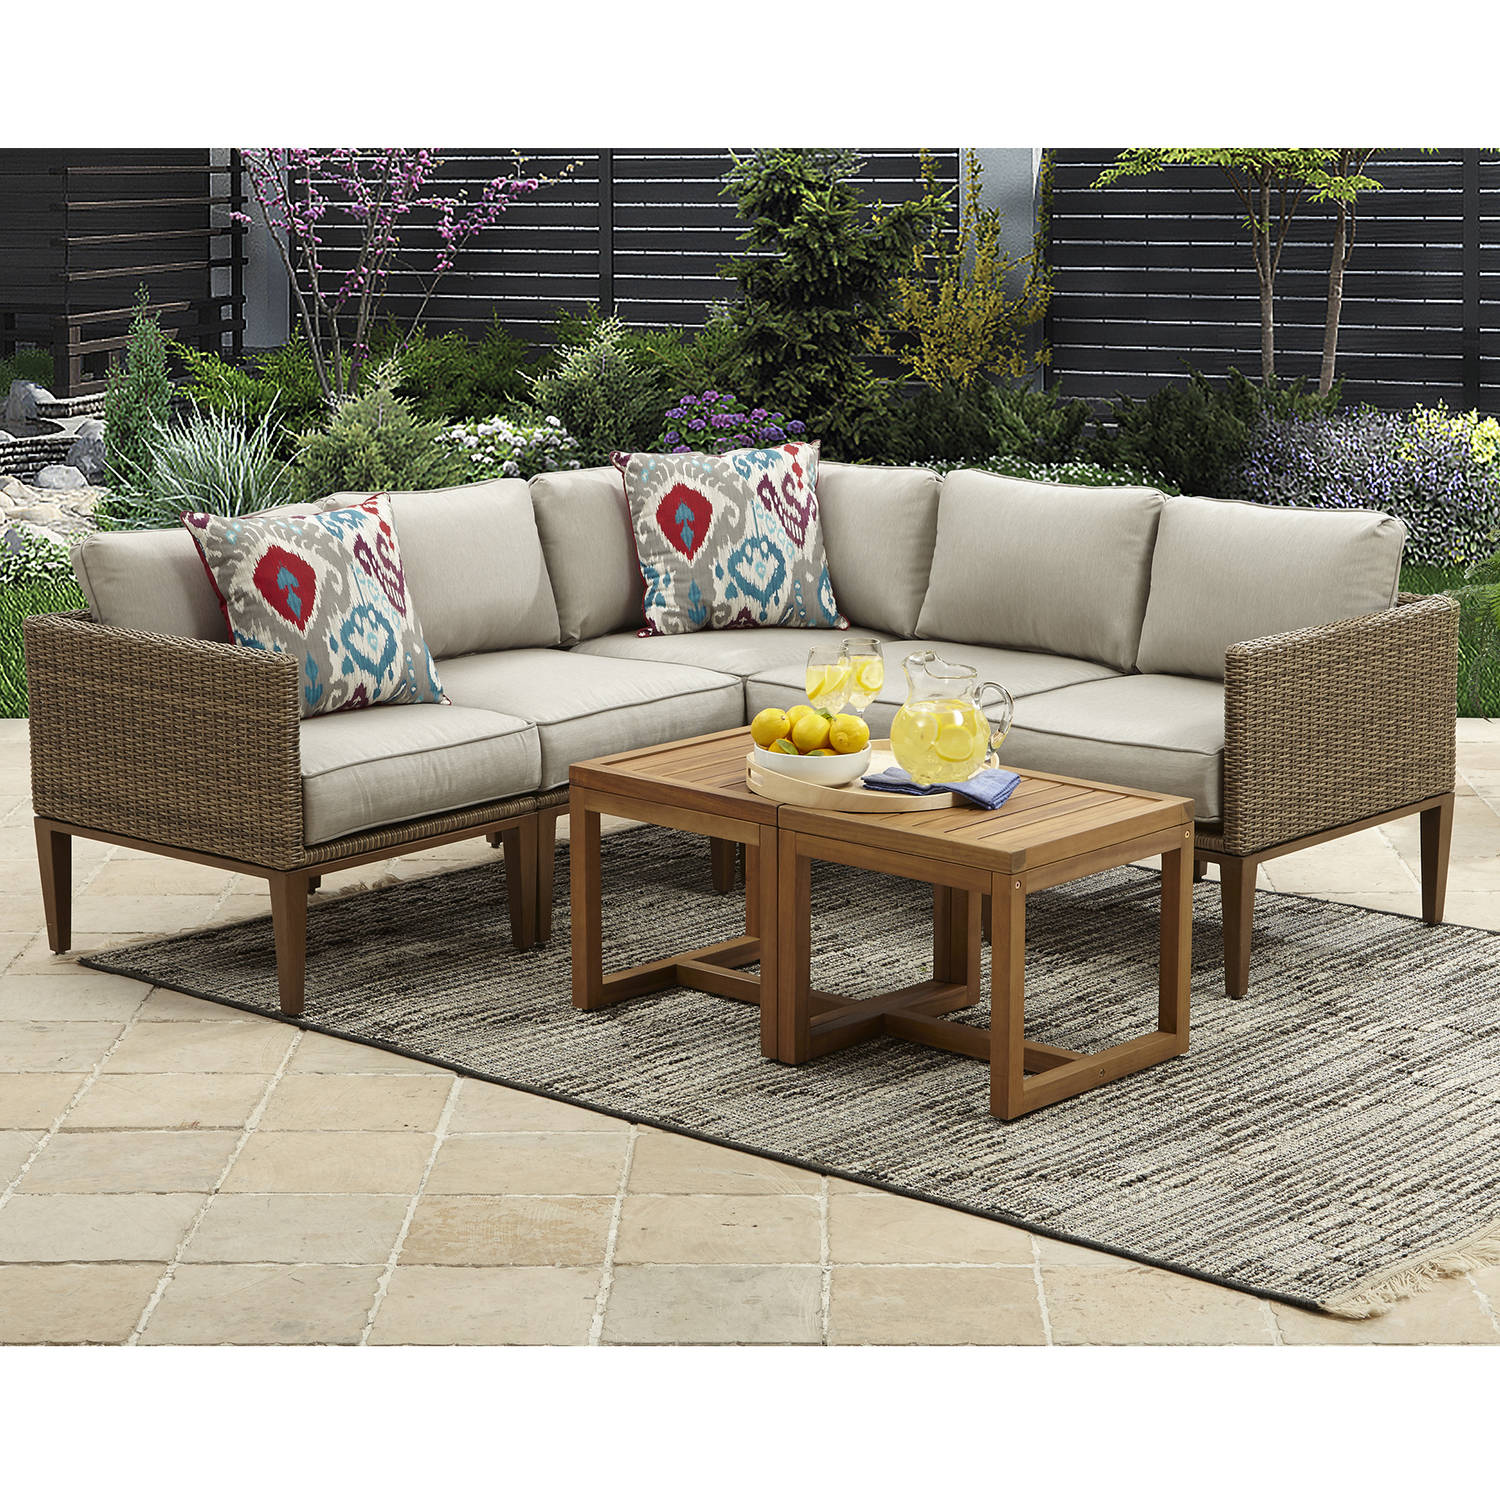 outdoor sectional. Perfect Sectional Better Homes And Gardens Davenport 7Piece Woven Outdoor Sectional Set For R